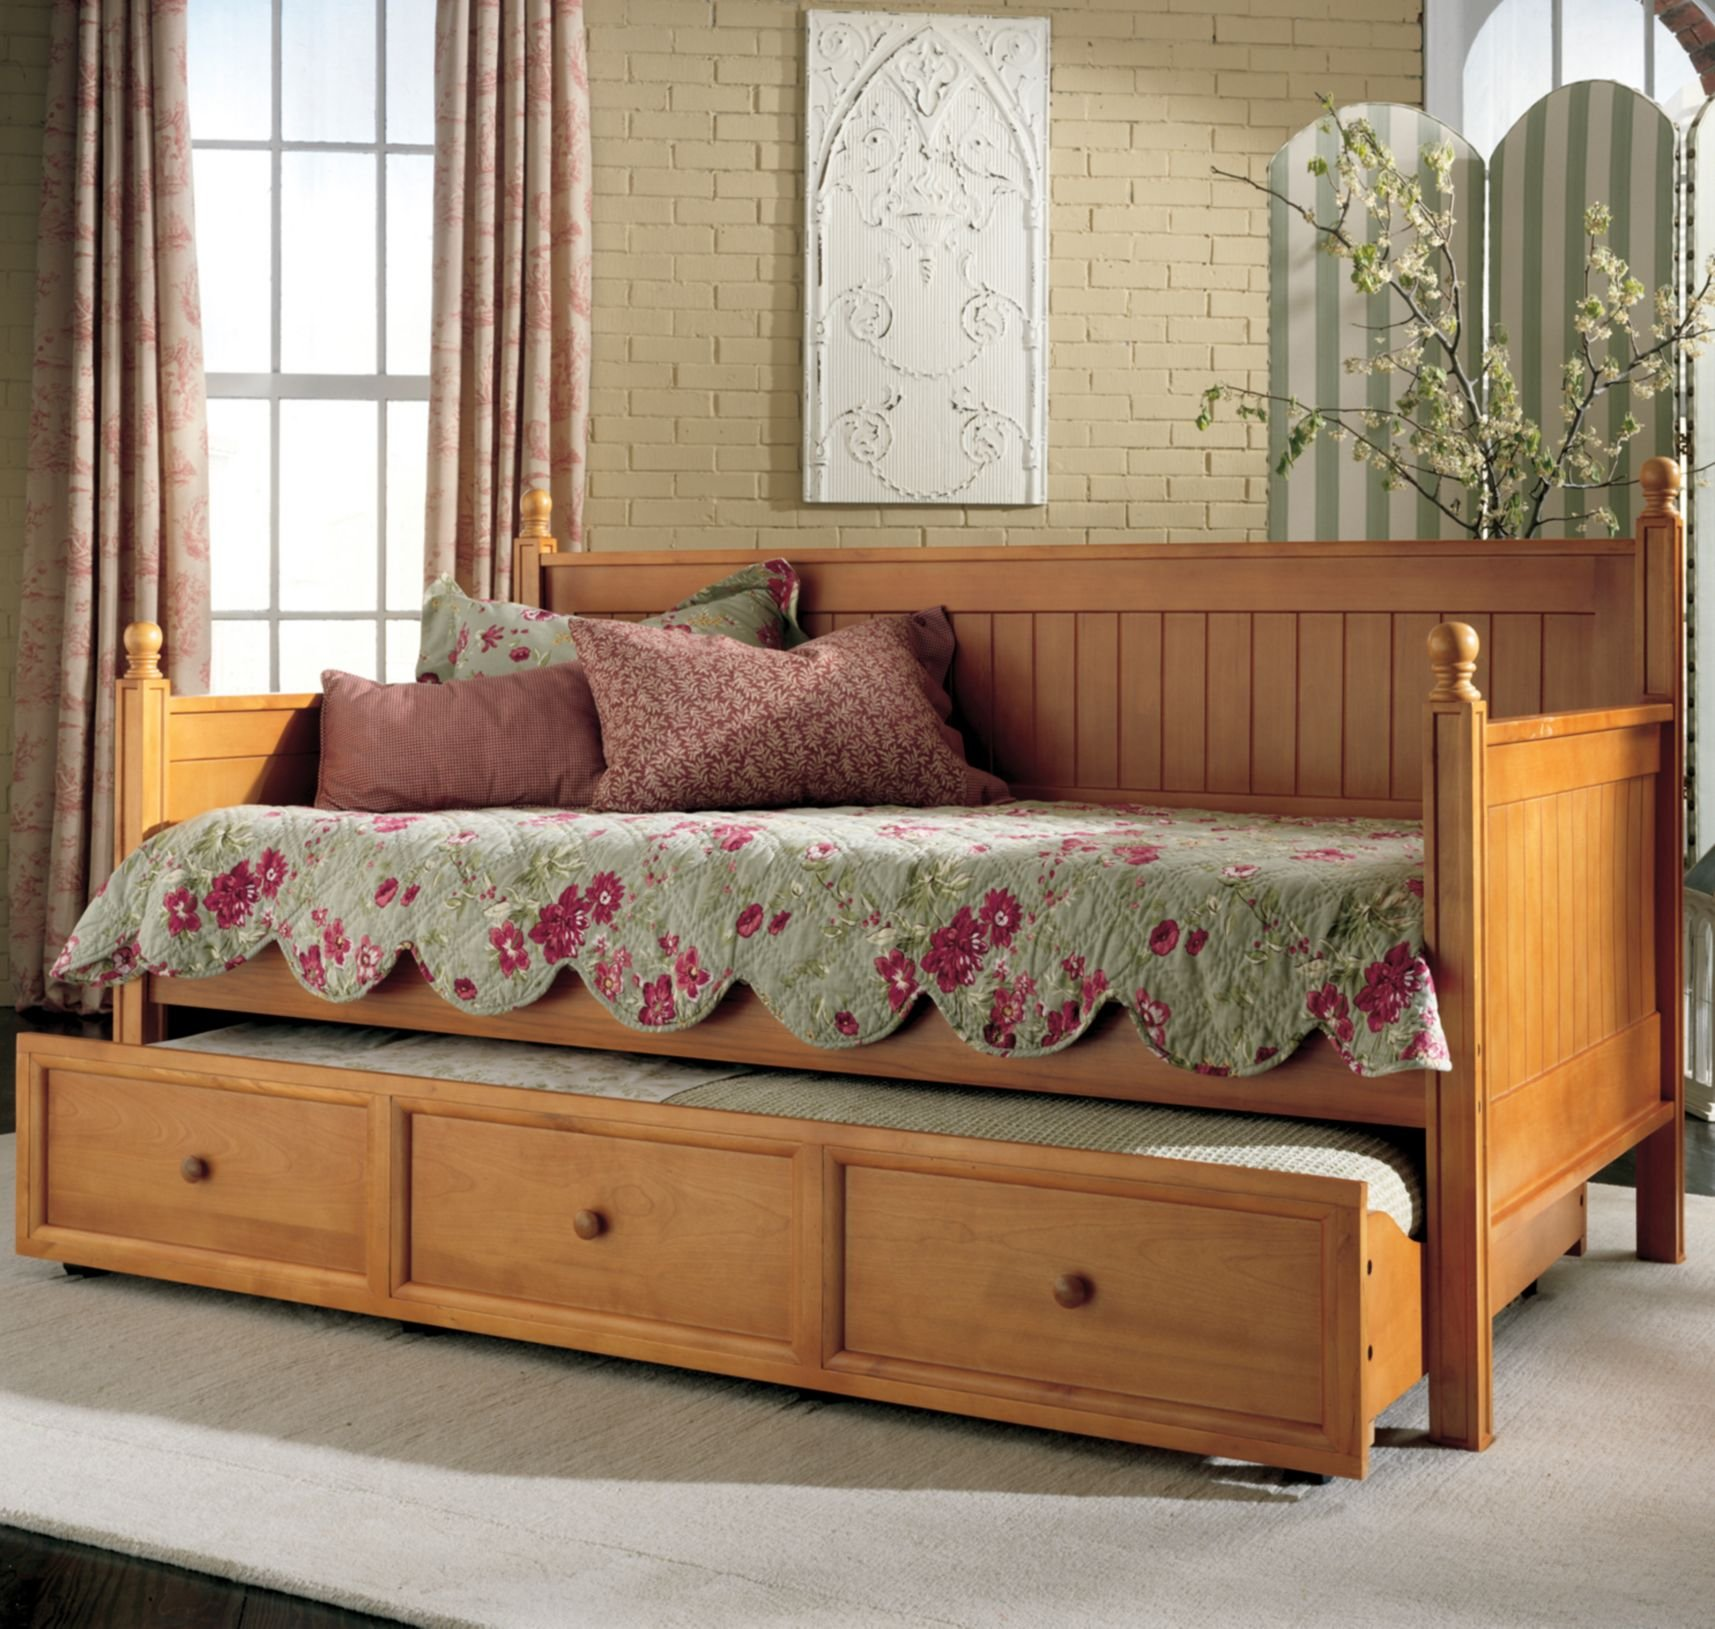 Casey Daybed Honey Maple (without Trundle) by Fashion Bed Group - Maple finish Constructed of solid hardwoods - bedroom-furniture, bed-frames, bedroom - 81d0bt%2BhkAL -